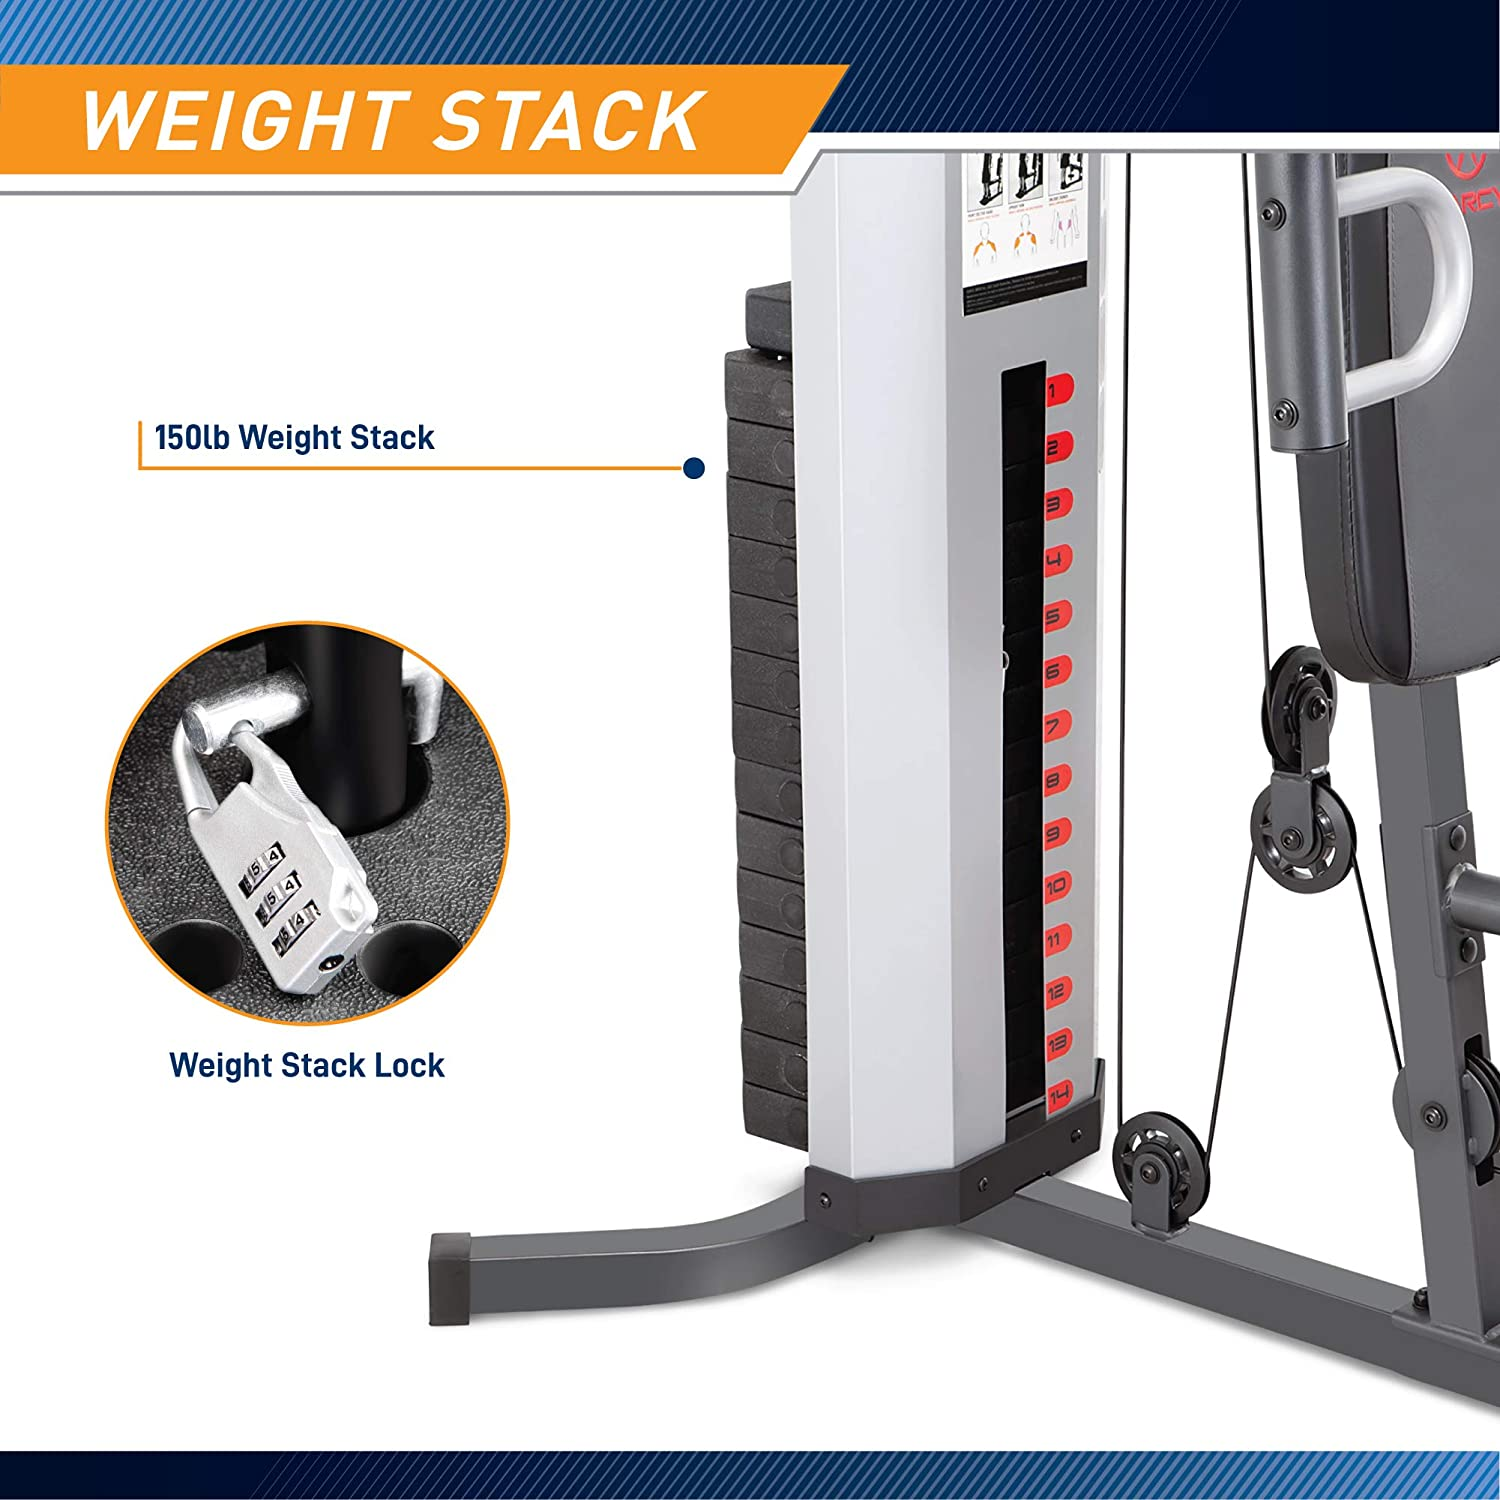 Marcy MWM 988 weight stack